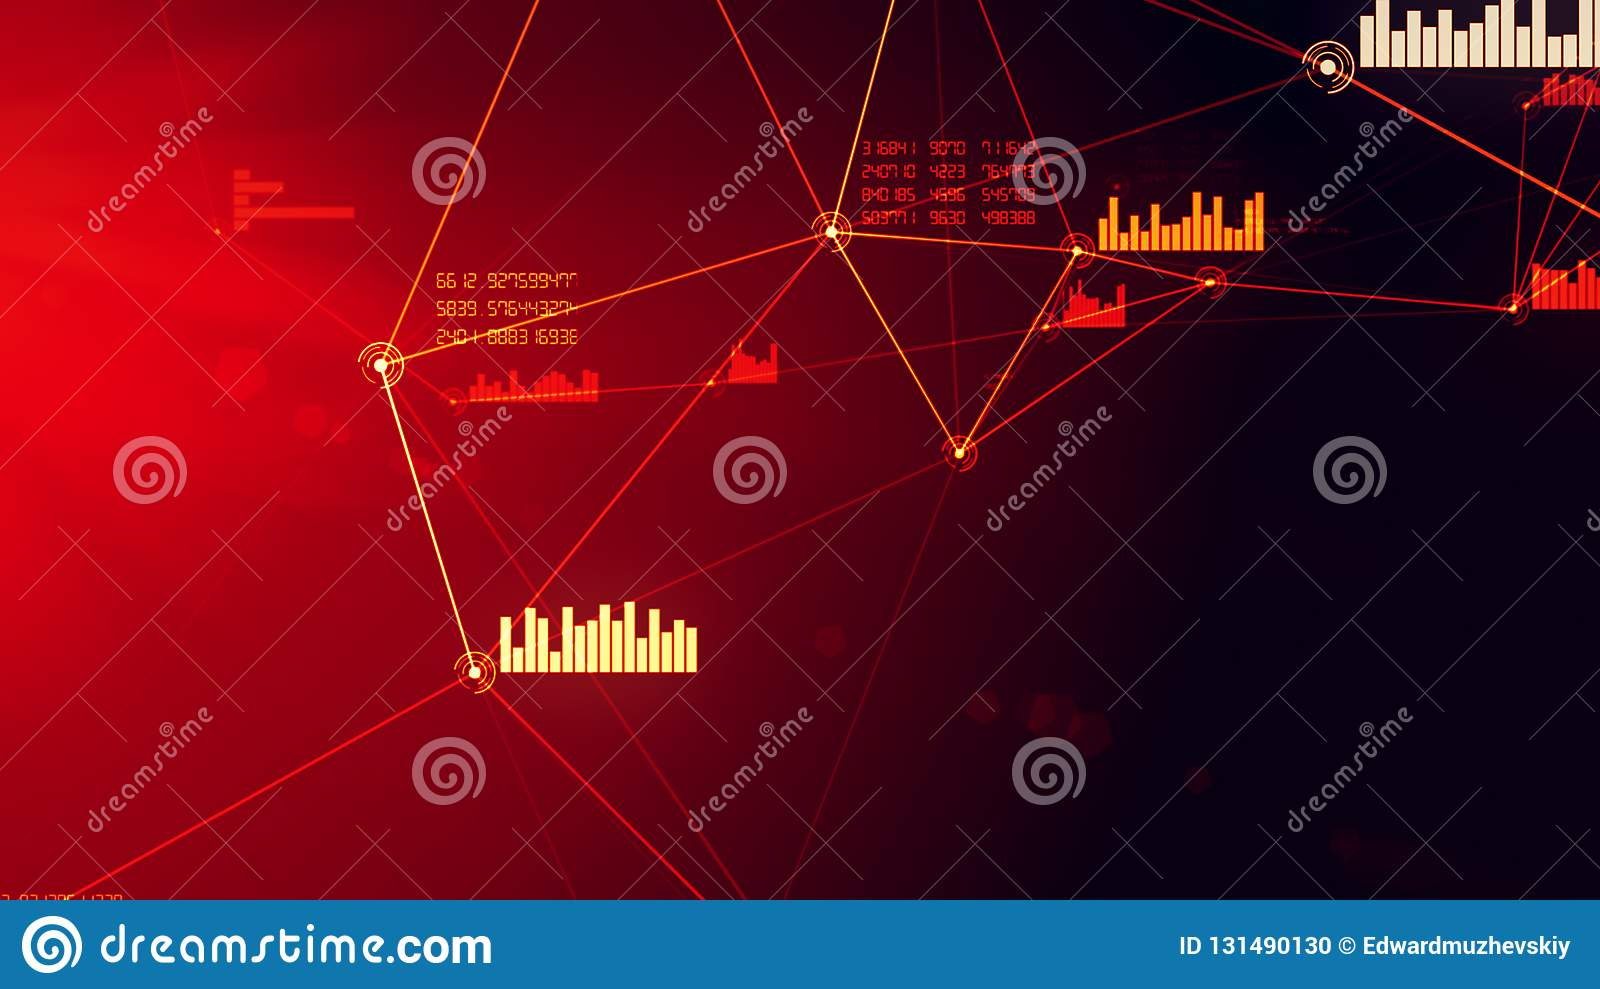 Futuristic abstract red network and data connection grid illustration